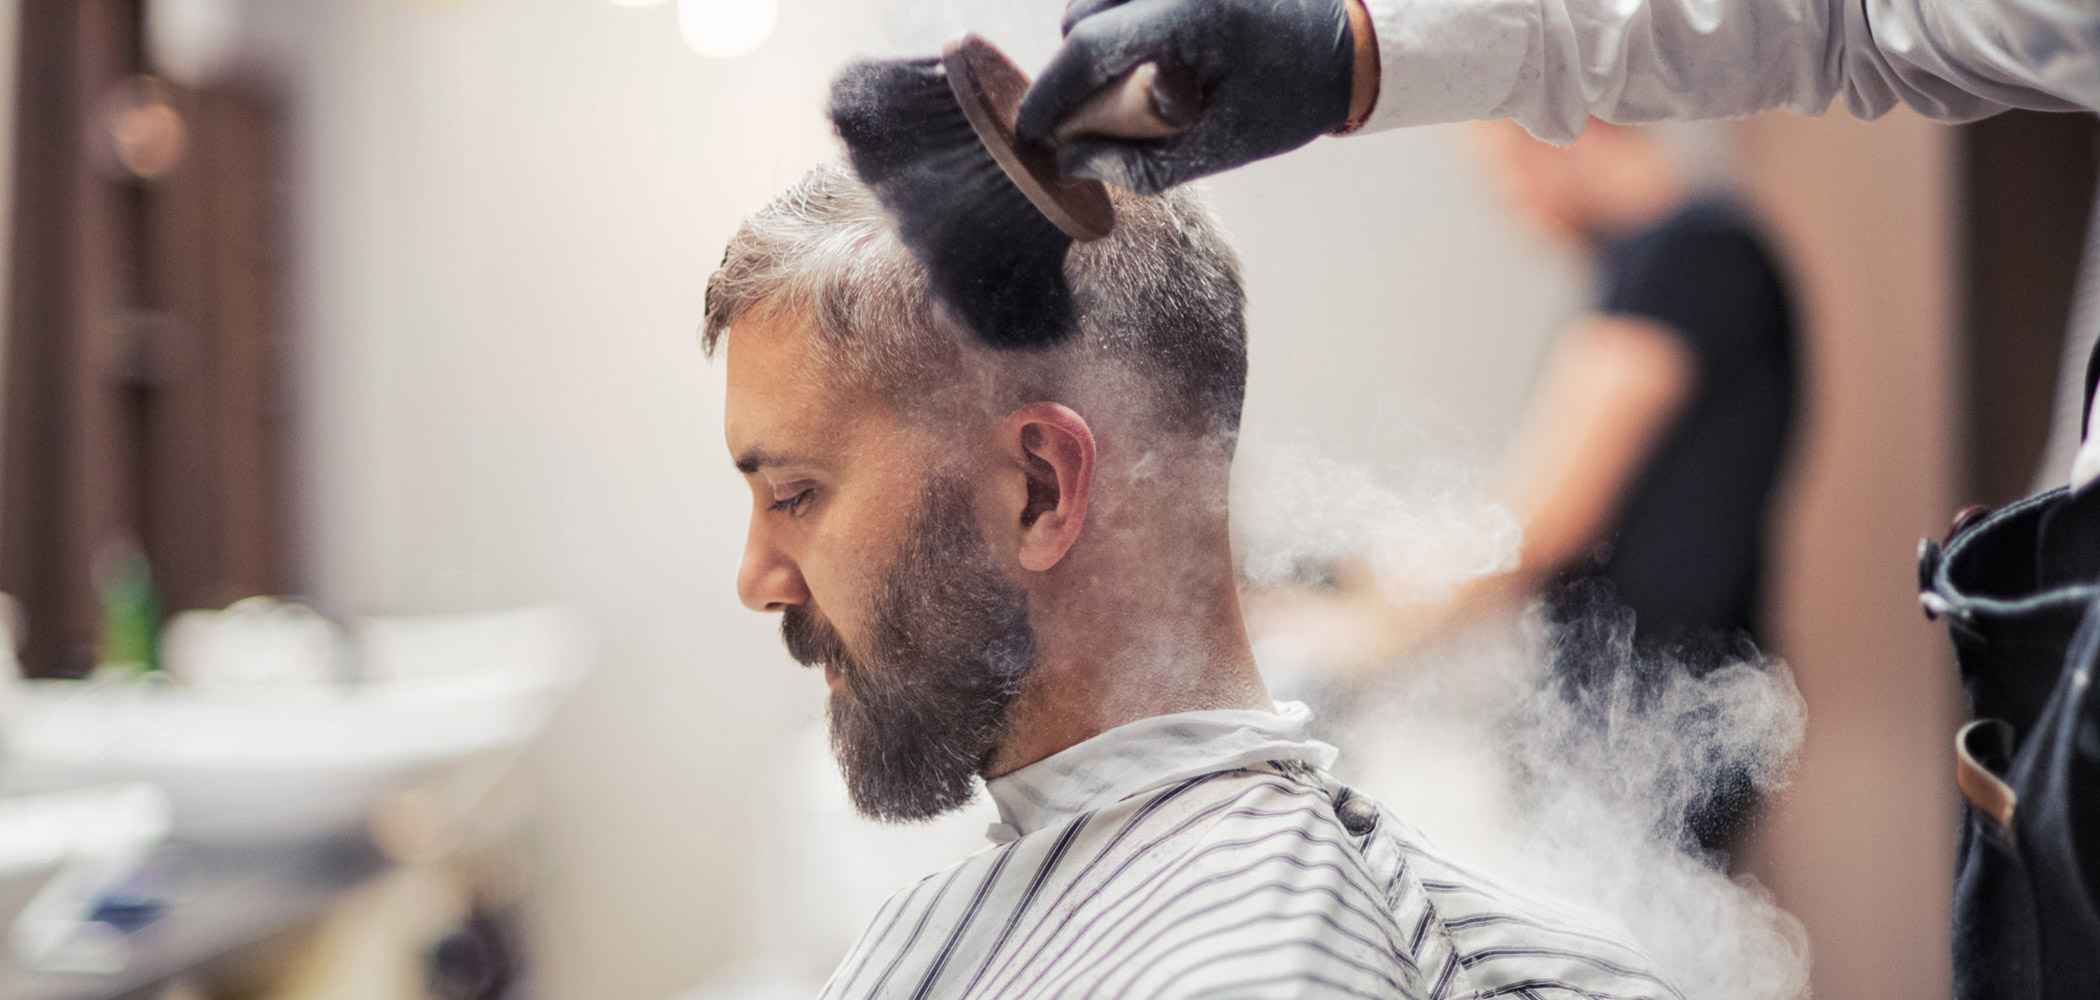 Beauty Hacks And Styling For New Year Eve- For Men